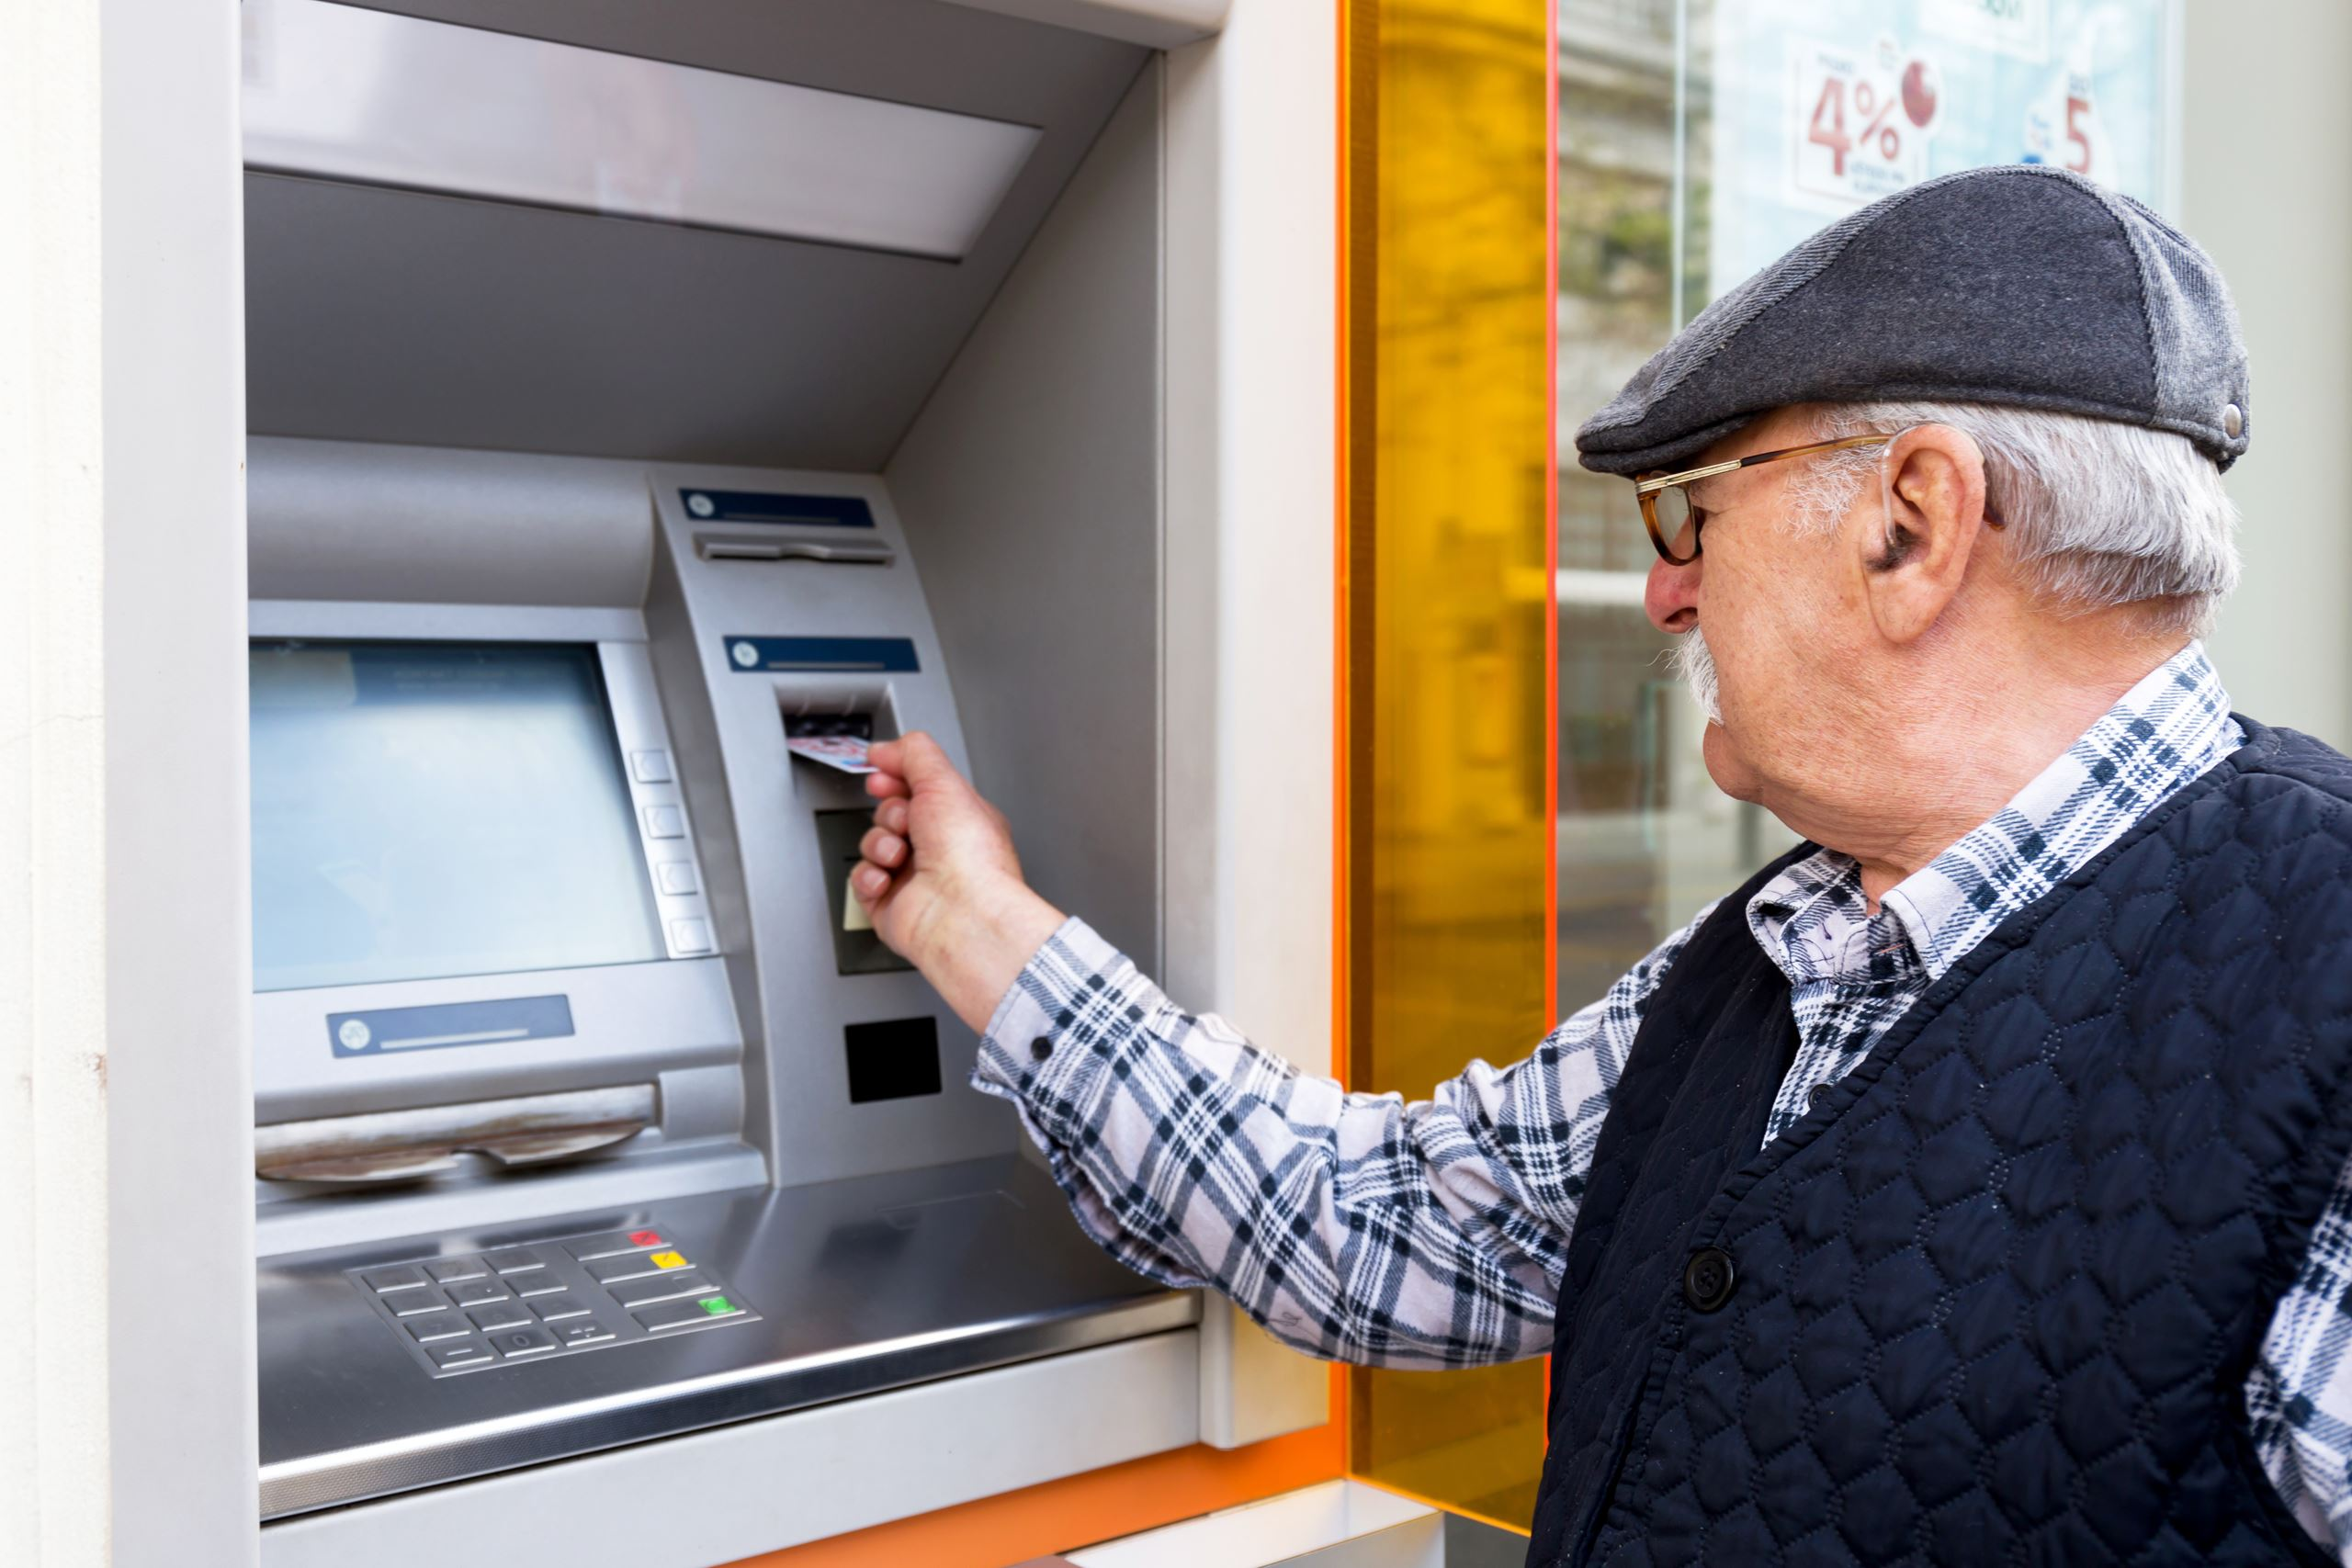 Man standing at ATM